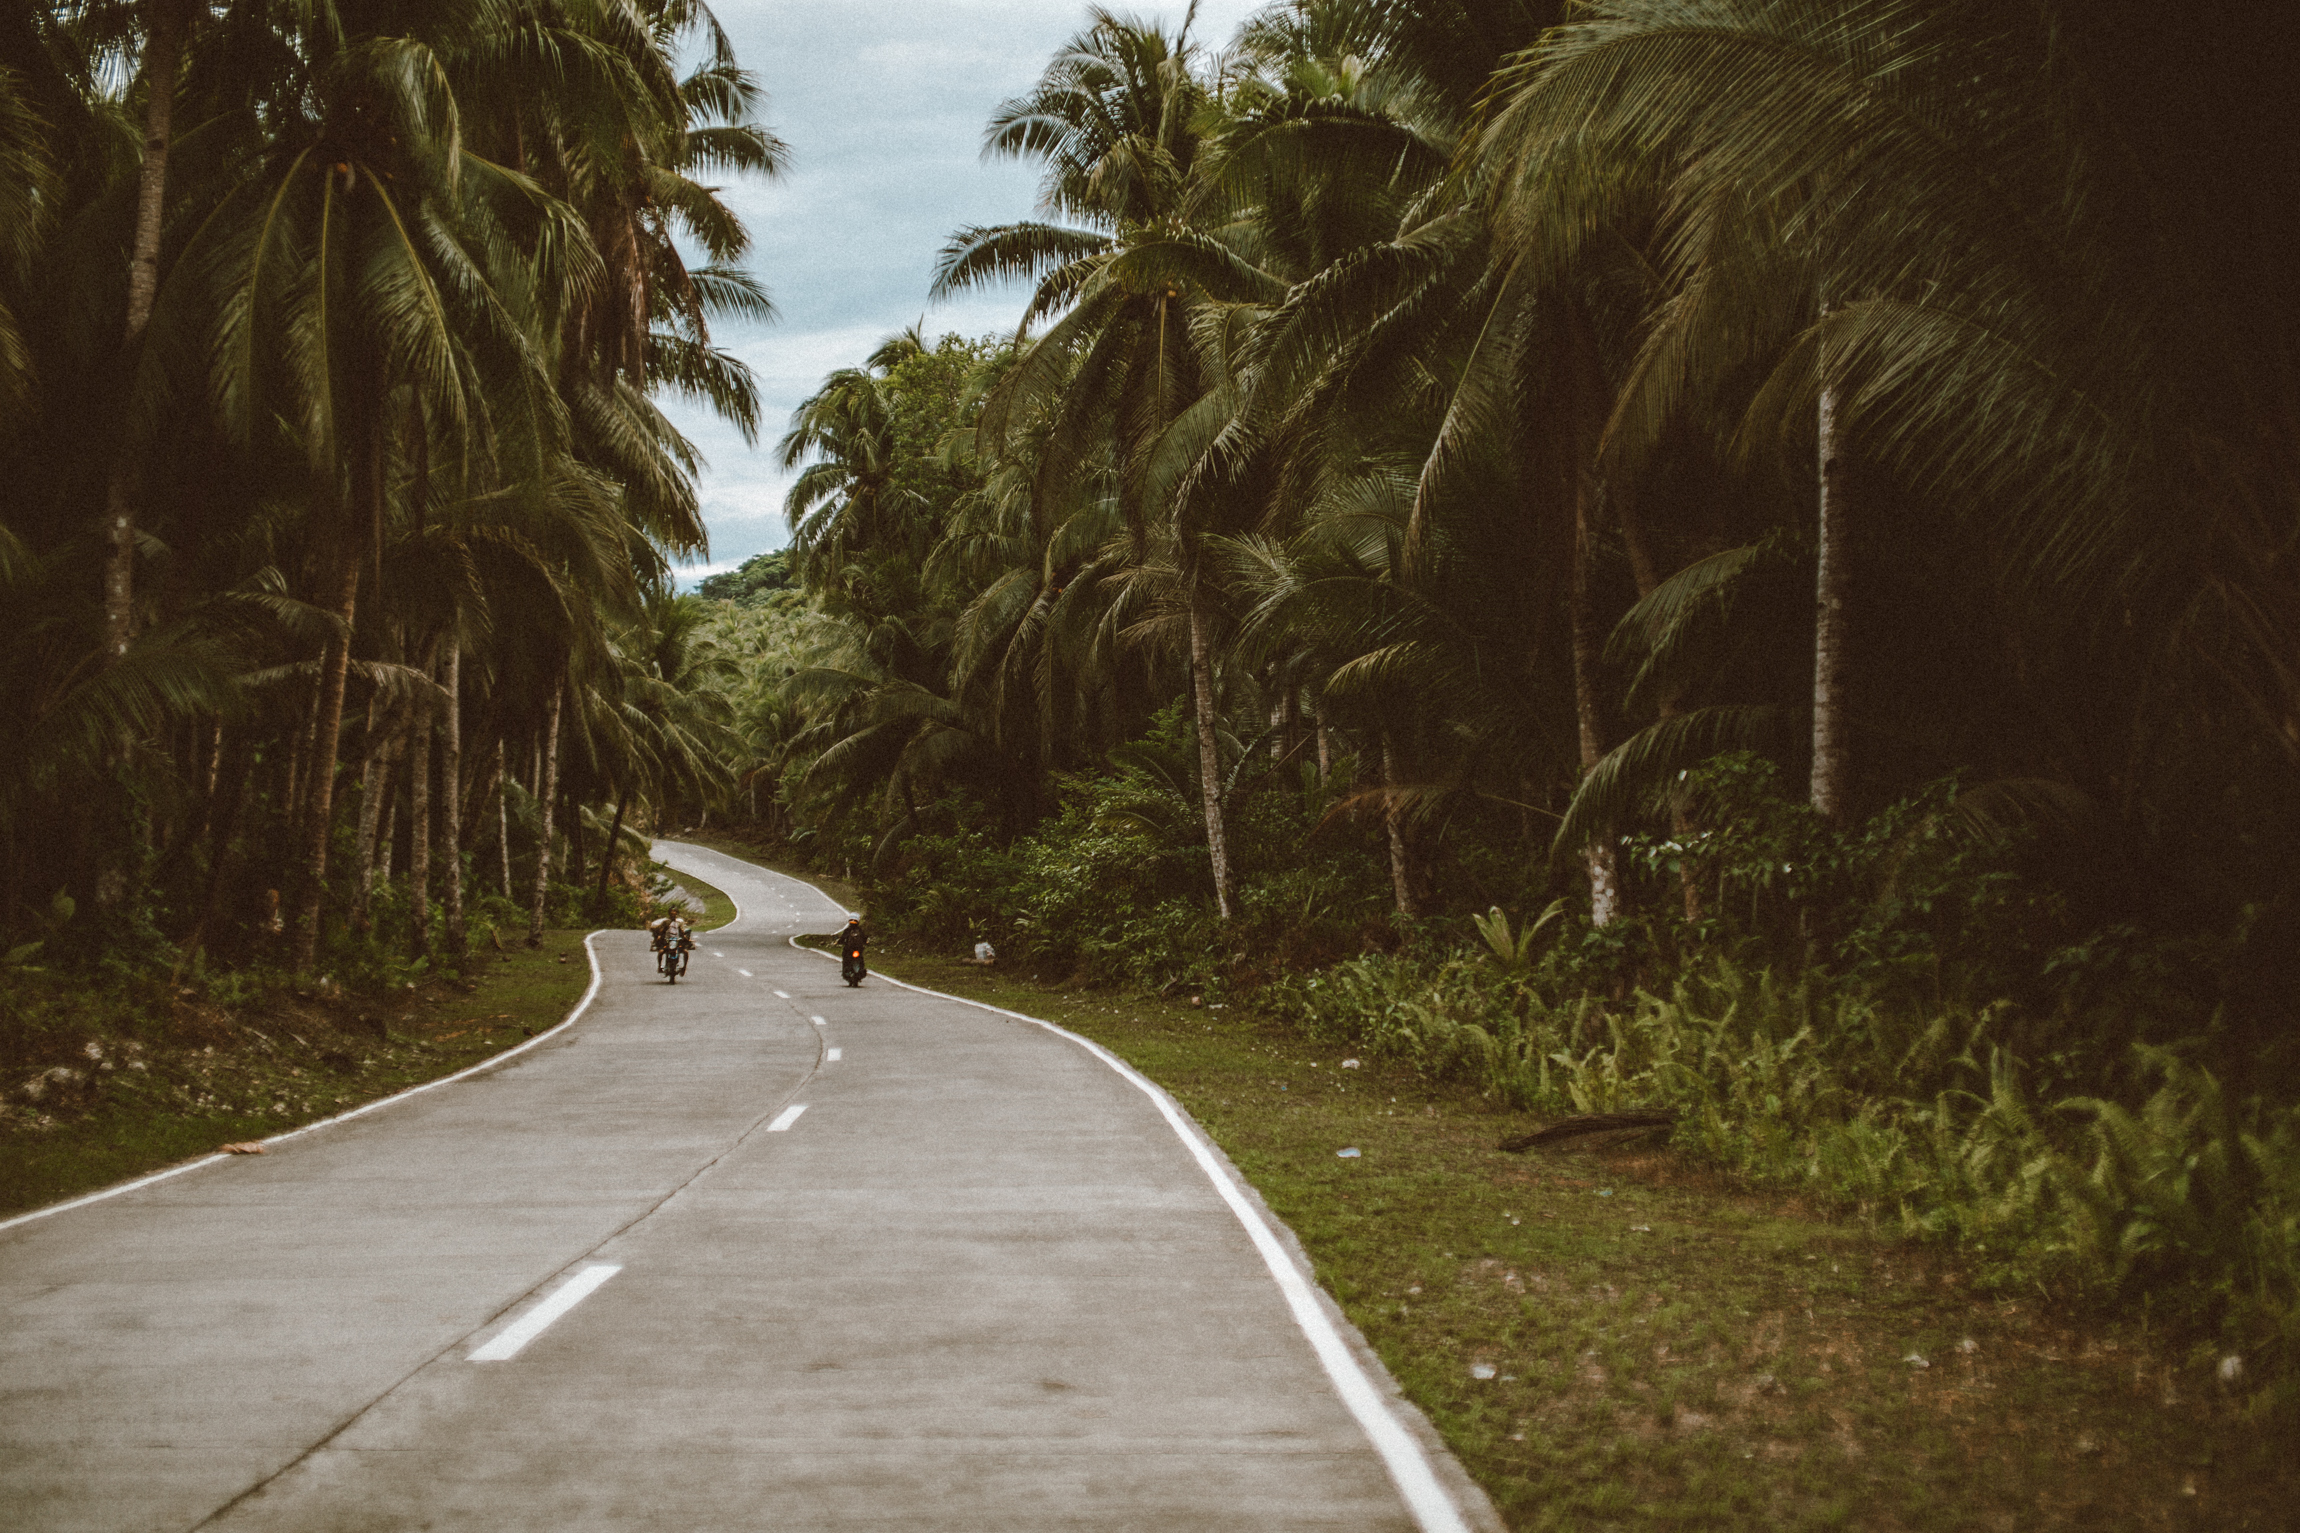 Siargao Winding Roads - Coconut Trees